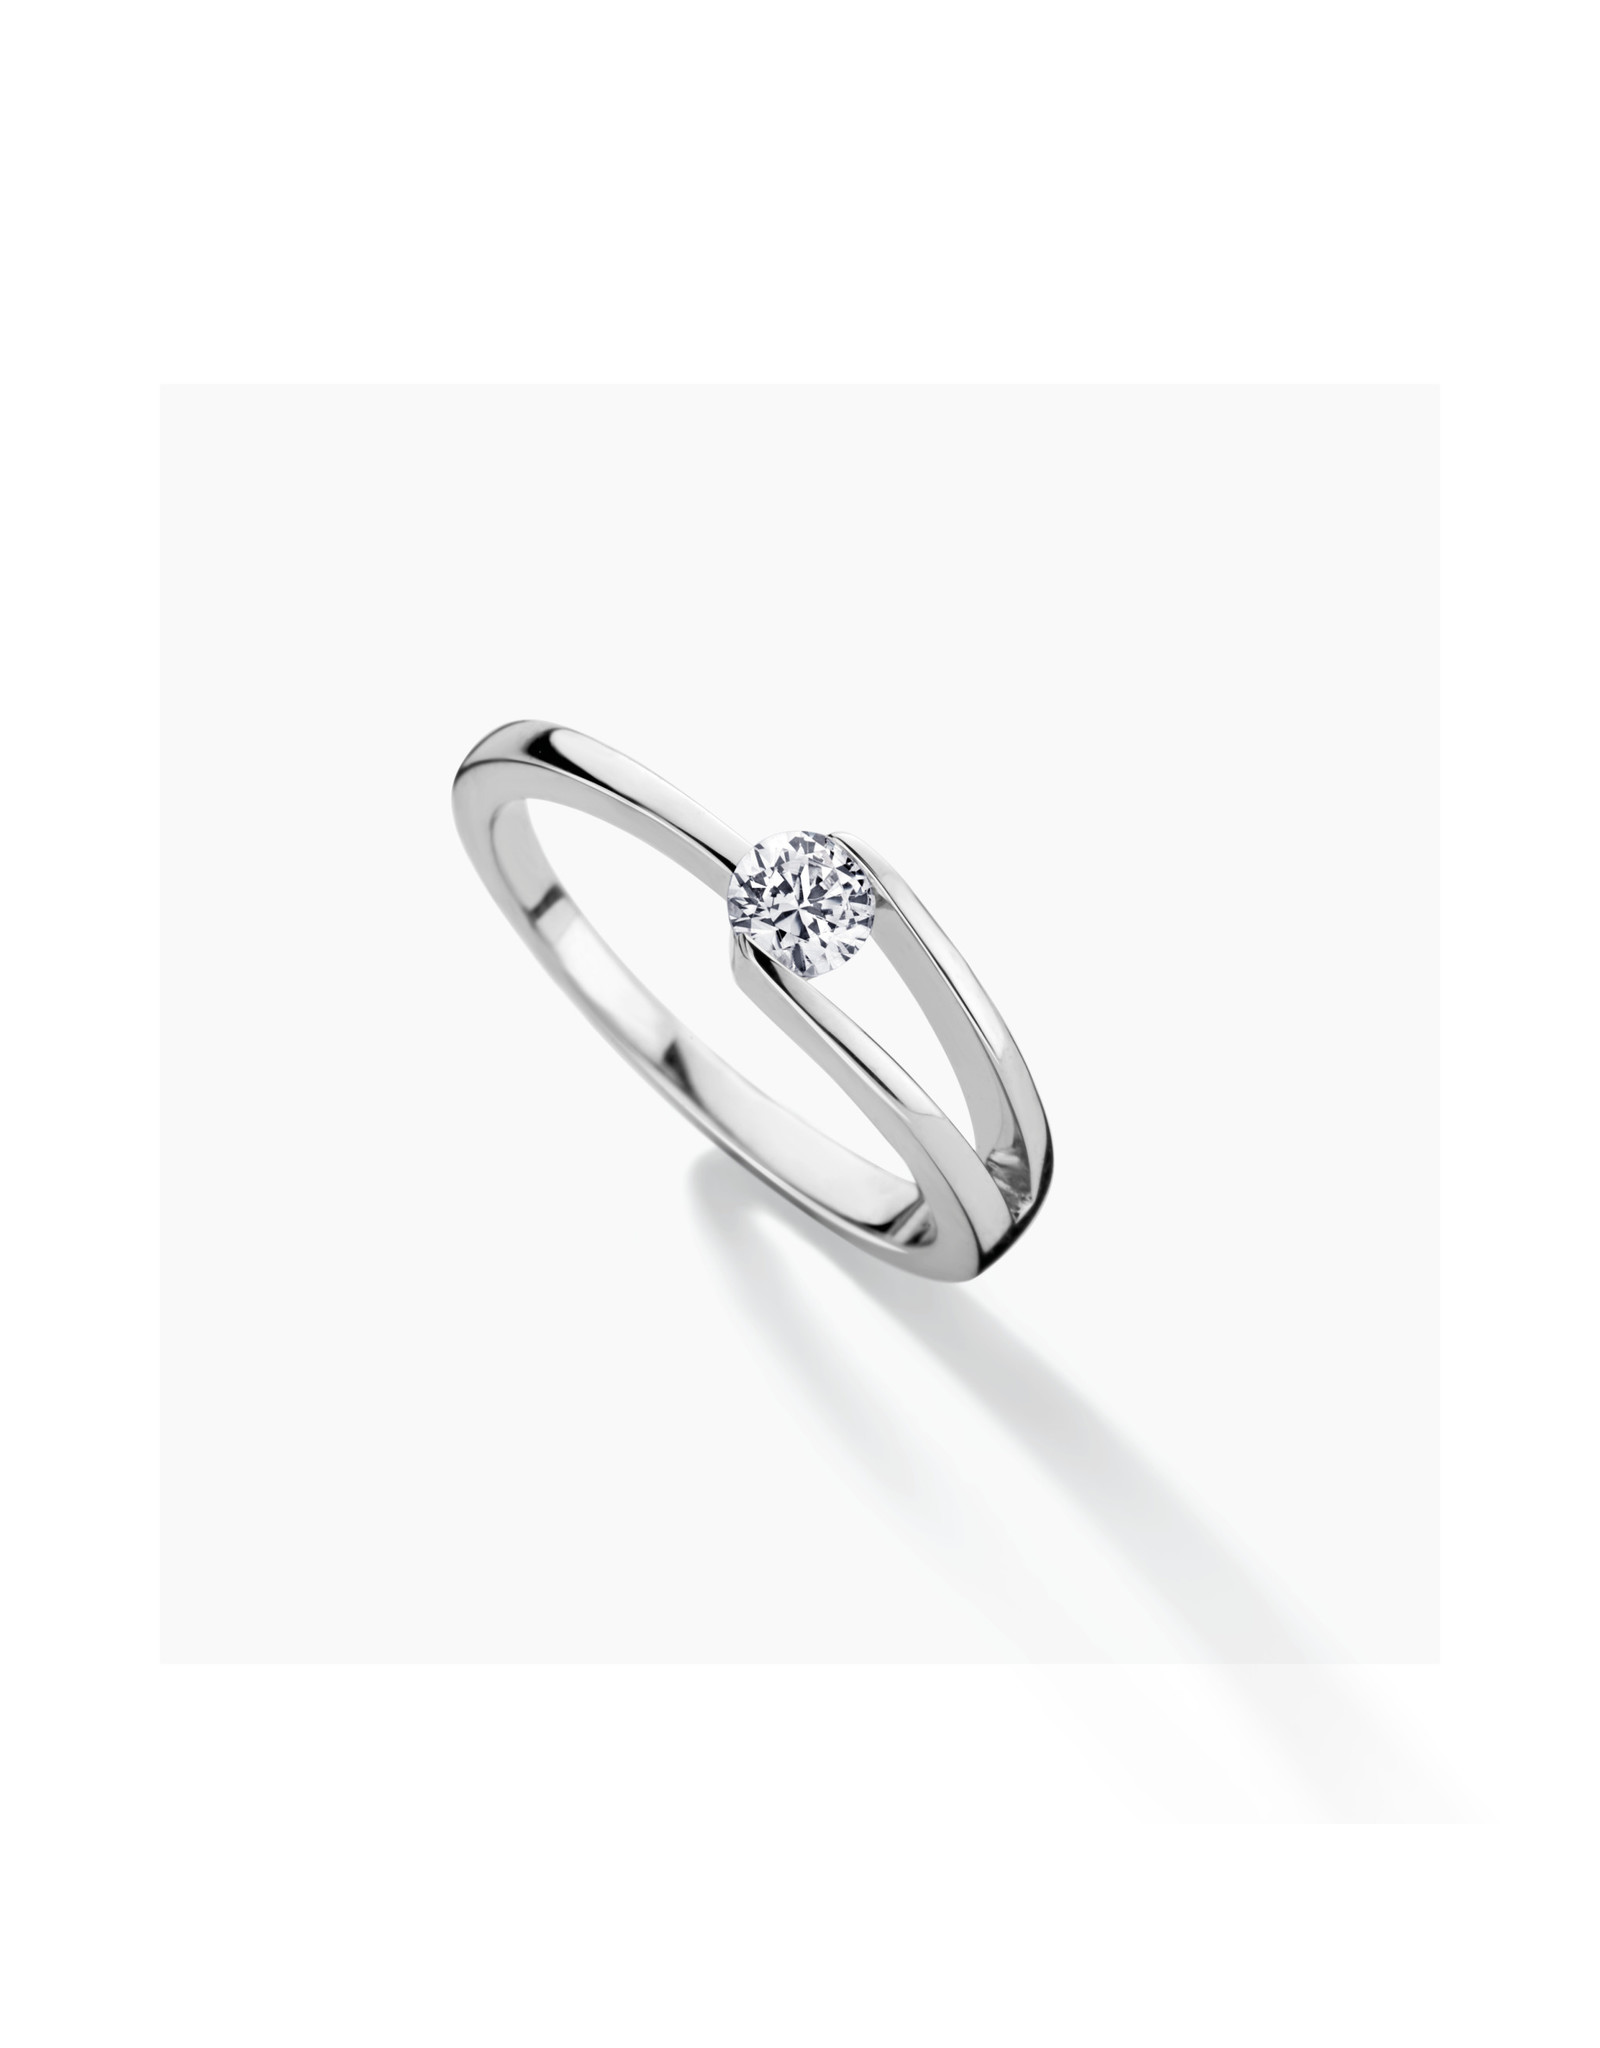 FJF Jewellery Ring Solitaire 4mm FJF0040454SWH Classic Zilver maat 52